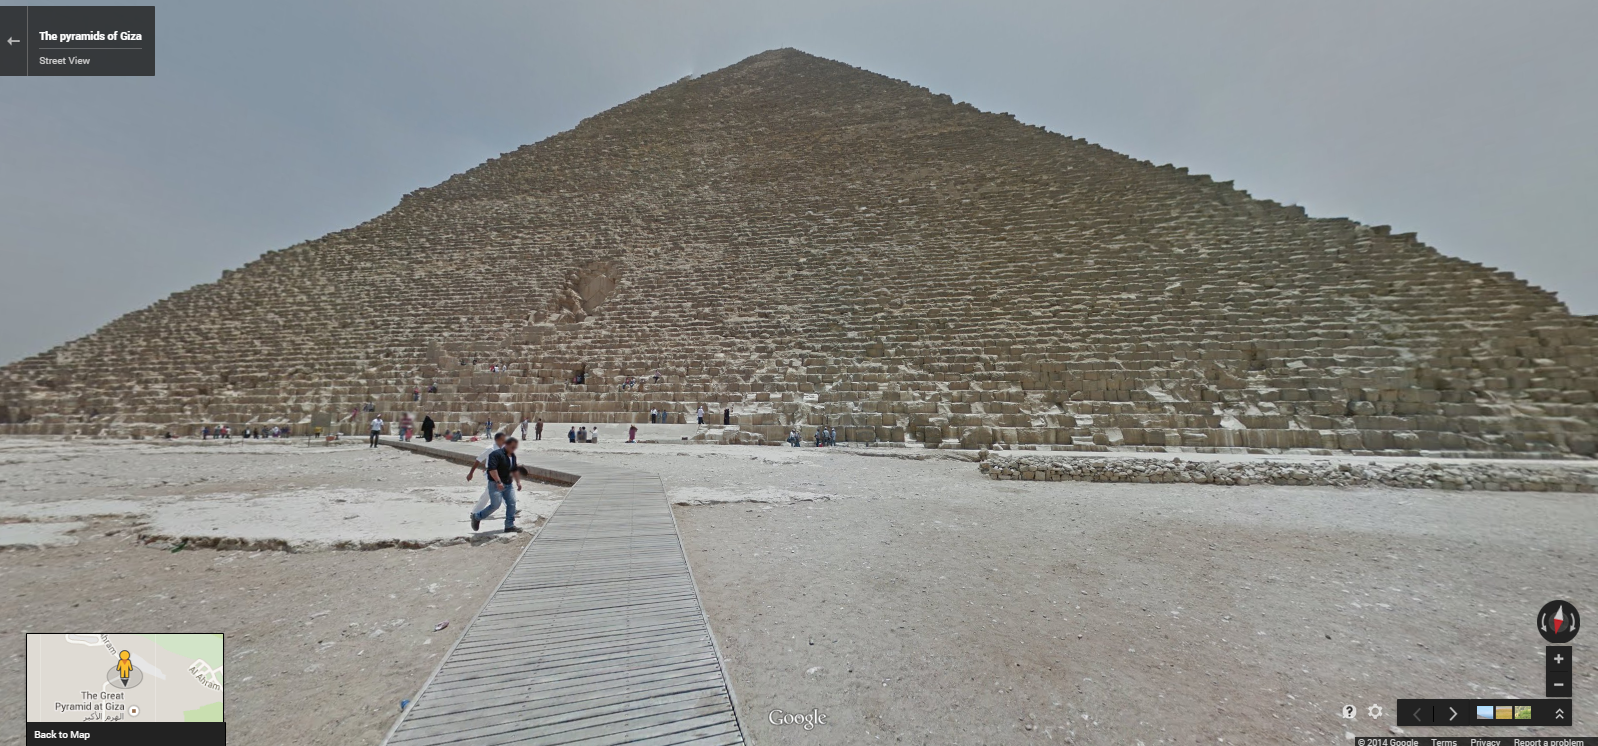 """The Great Pyramid Khufu in Giza. <a href=""""https://www.google.com/maps/@29.9756176,31.1385759,3a,75y,266.76h,90.17t/data=!3m5!1e1!3m3!1stcfQT8Ja6i7iAxcCtDKpLA!2e0!3e5"""" target=""""_blank"""">Click here</a> to view in Google Street View."""